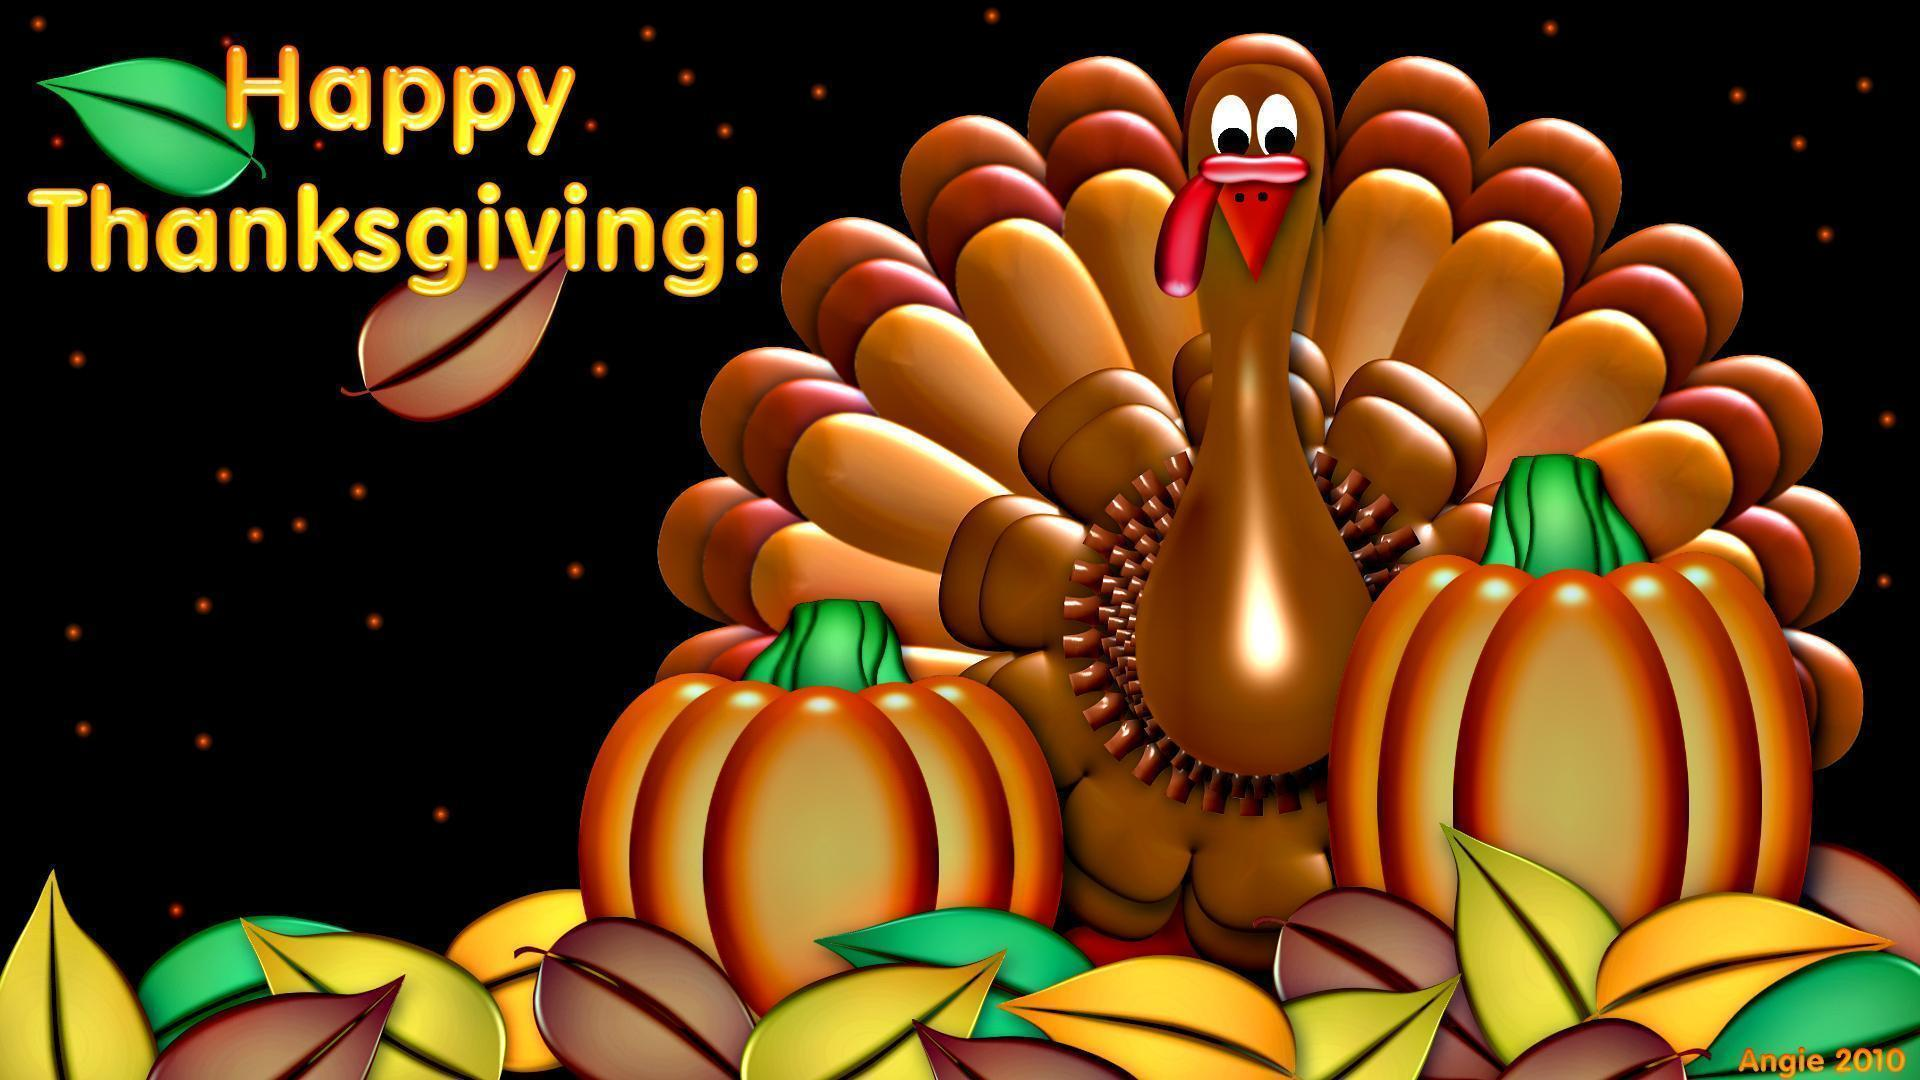 Happy Thanksgiving Pictures, image, Pics, Photos, Wallpapers 2014